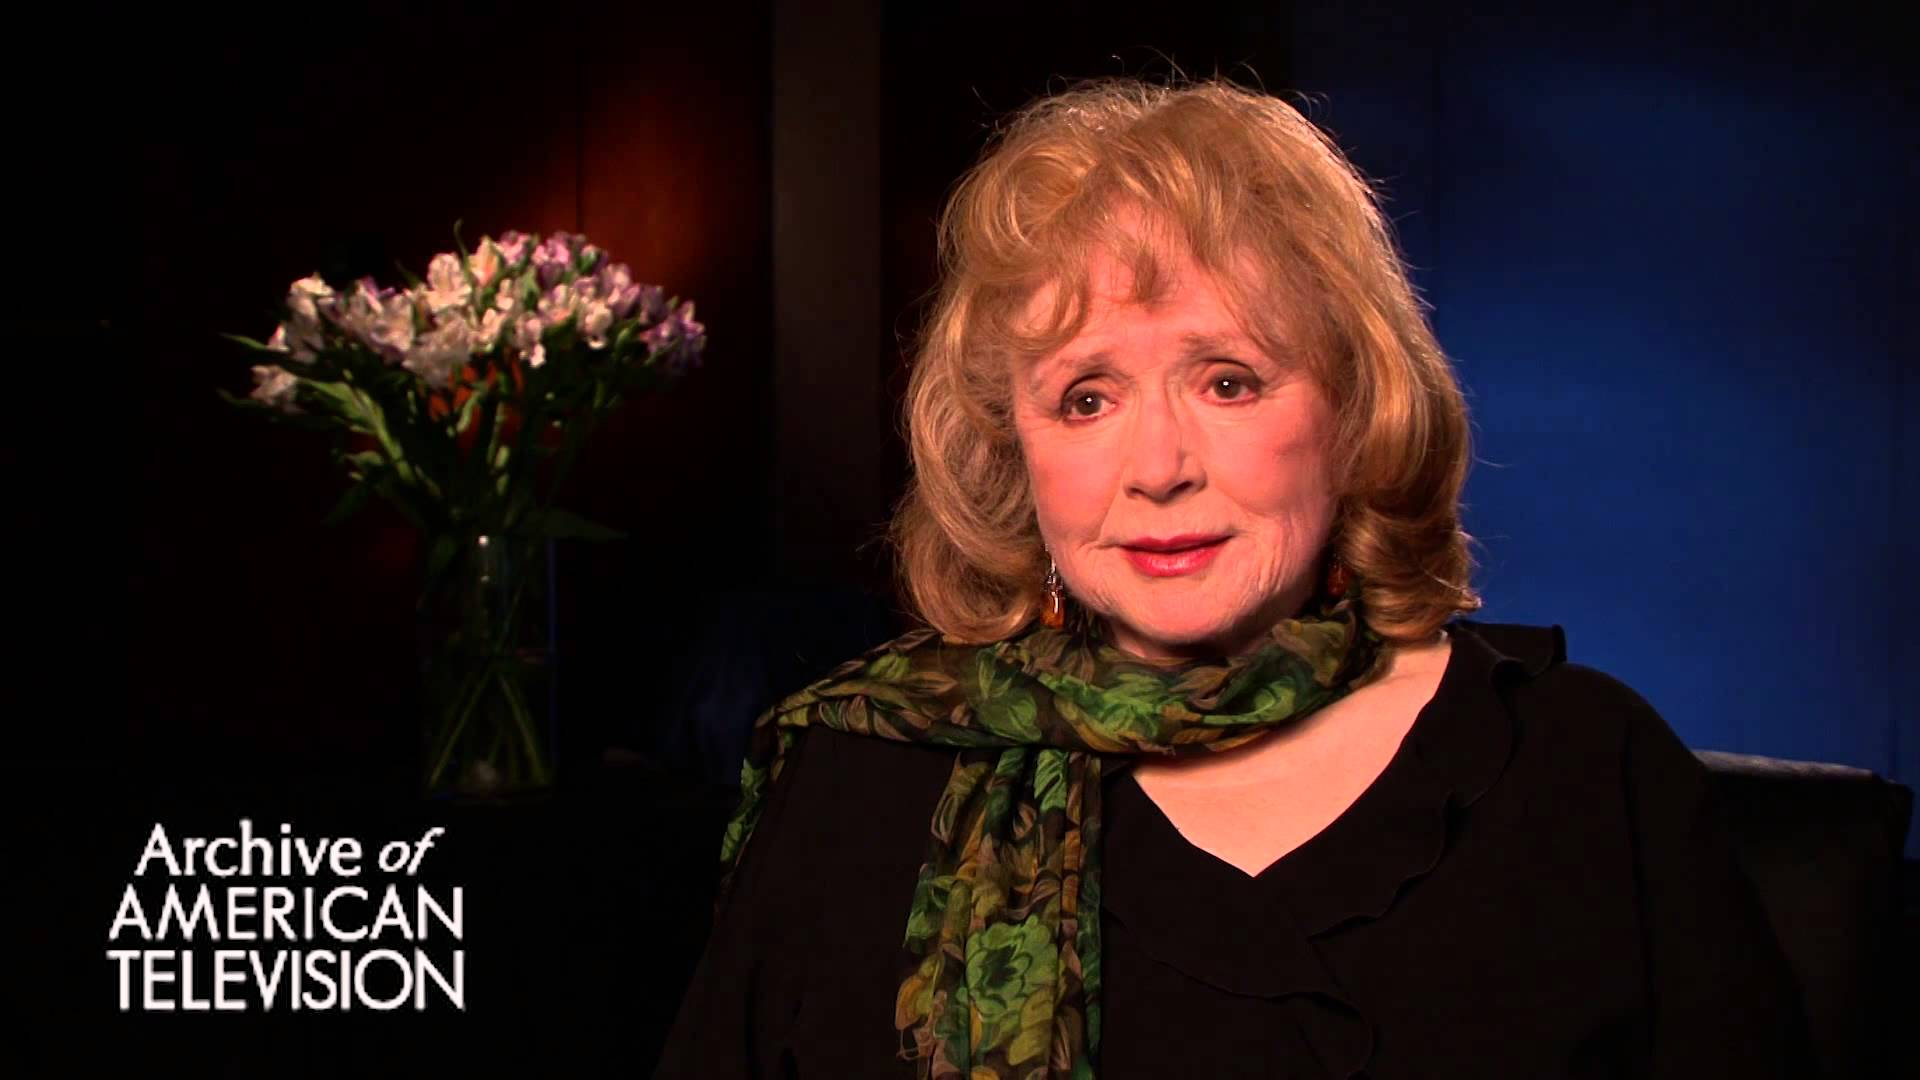 Piper Laurie Full hd wallpapers